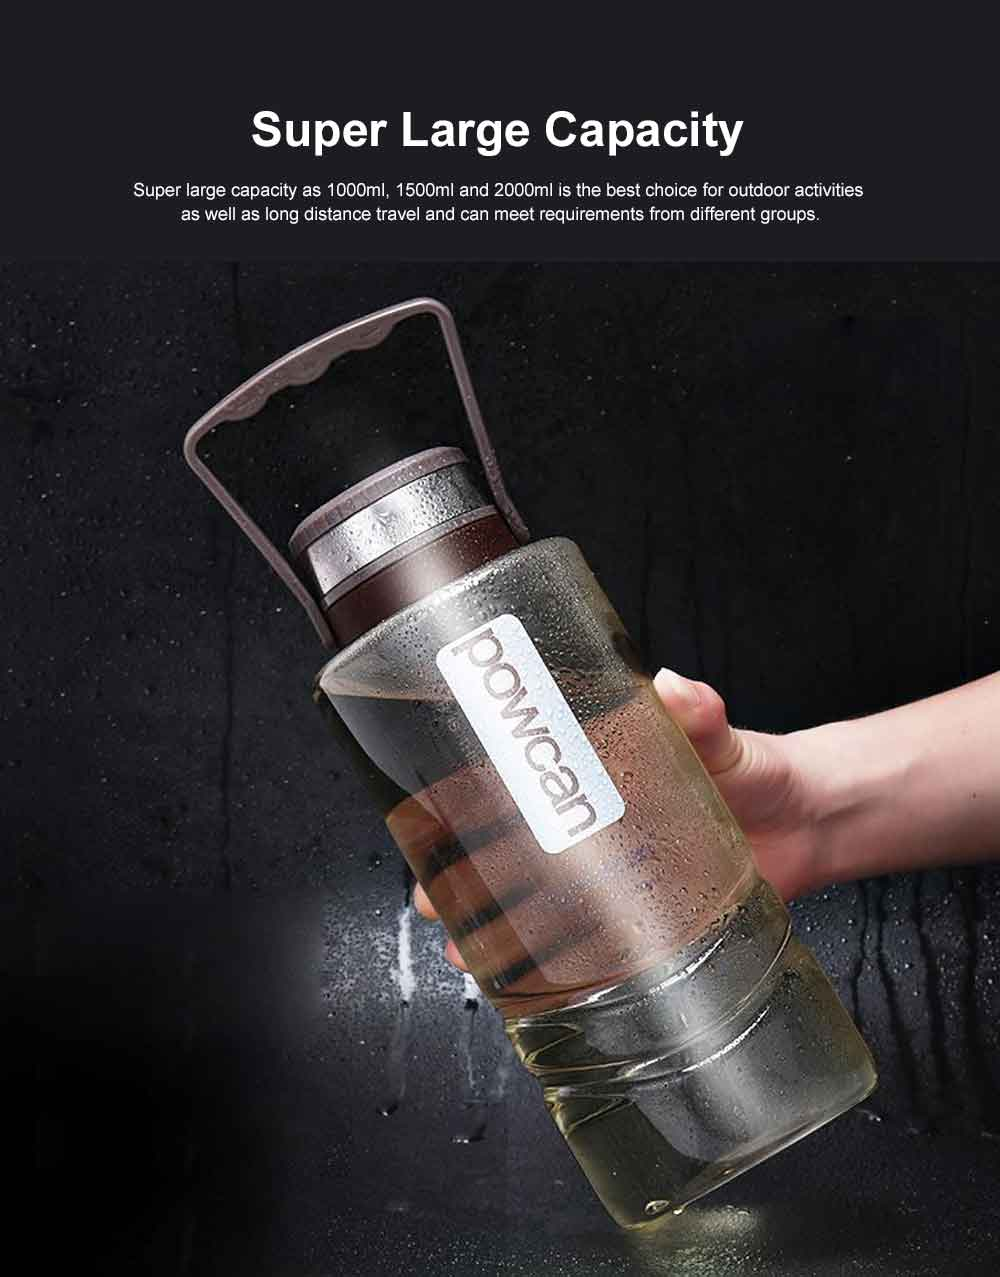 Plastic Space Bottle for Outdoor Sports Super Large Capacity Water Cup Big Size Sports Use Water Cup Brand Powcan Capacity 1000/1500/2000ml 1